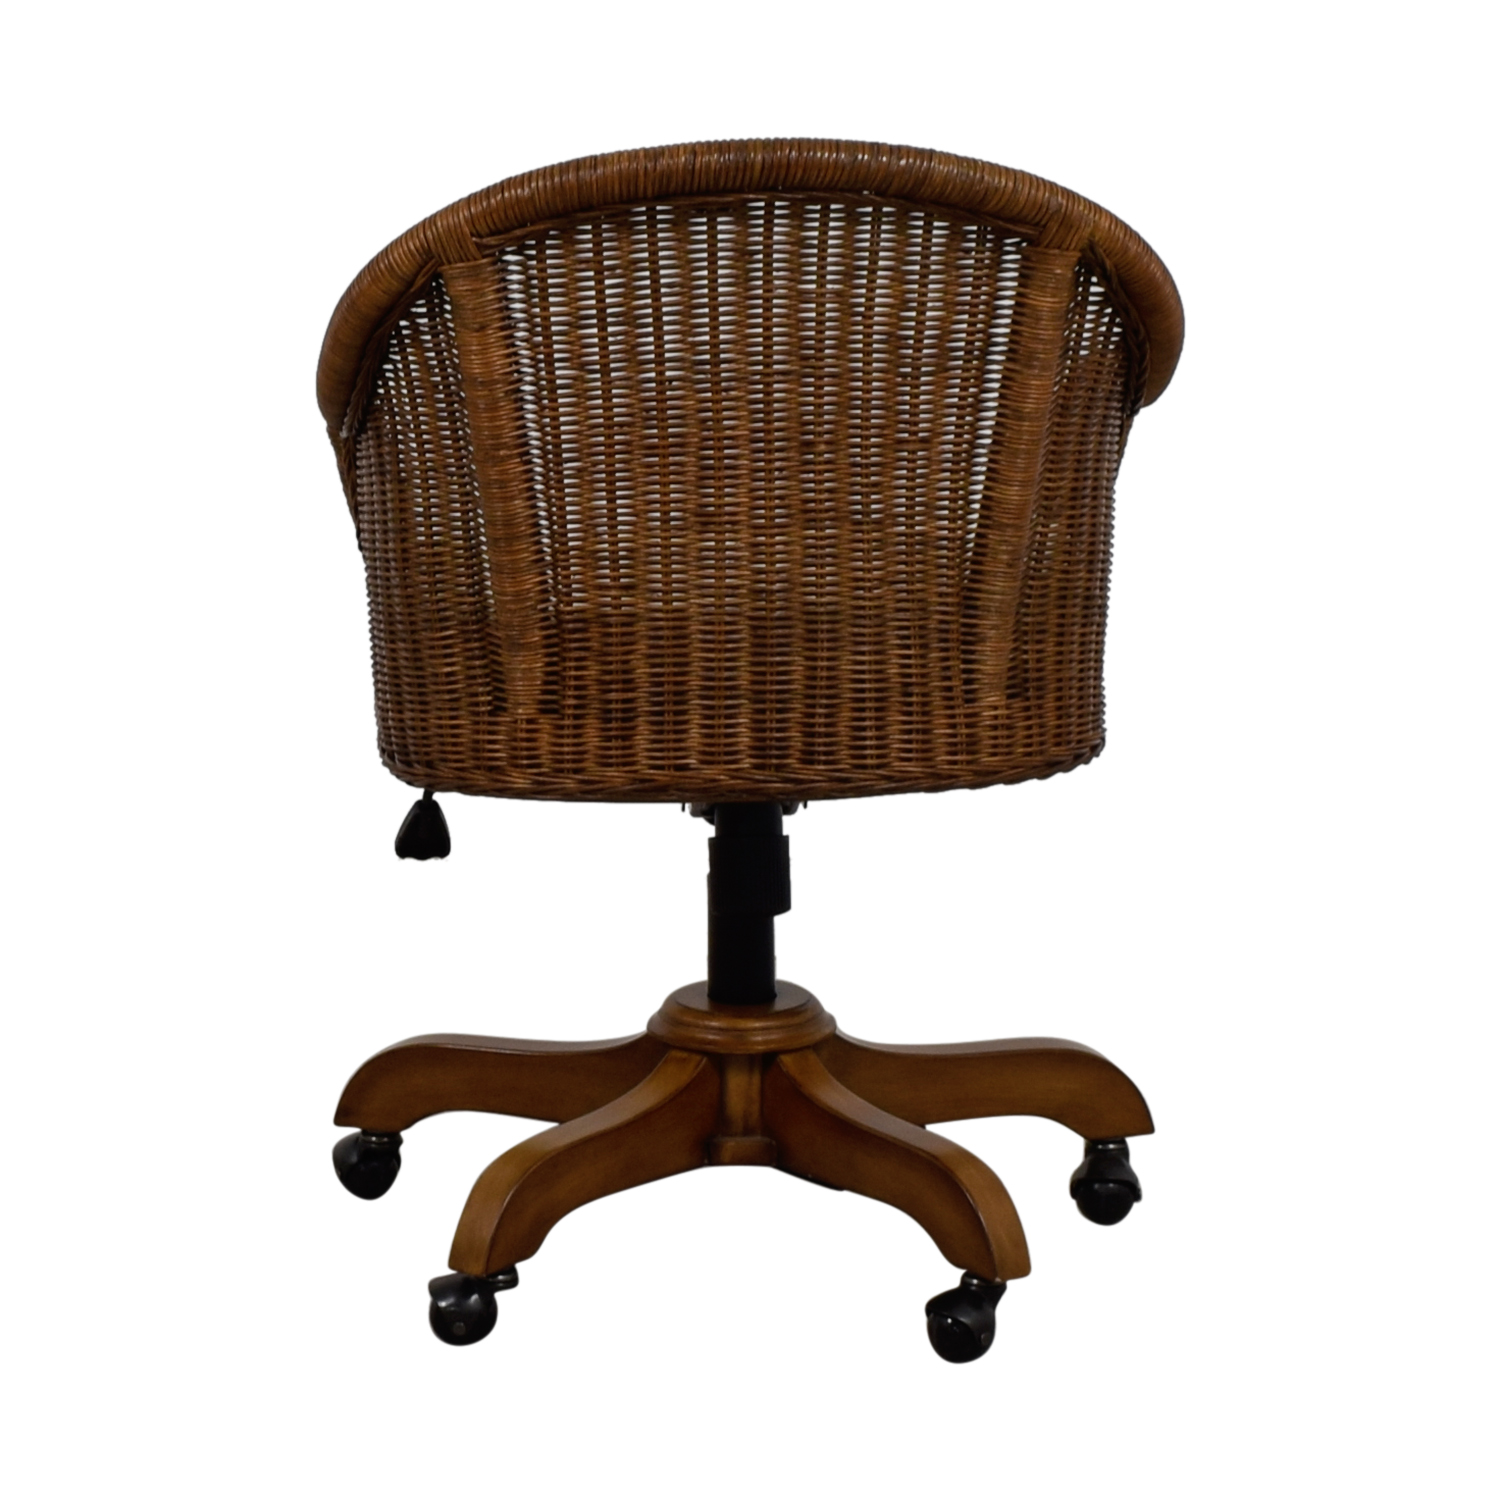 Pottery Barn Wingate Wicker Desk Chair Accent Chairs